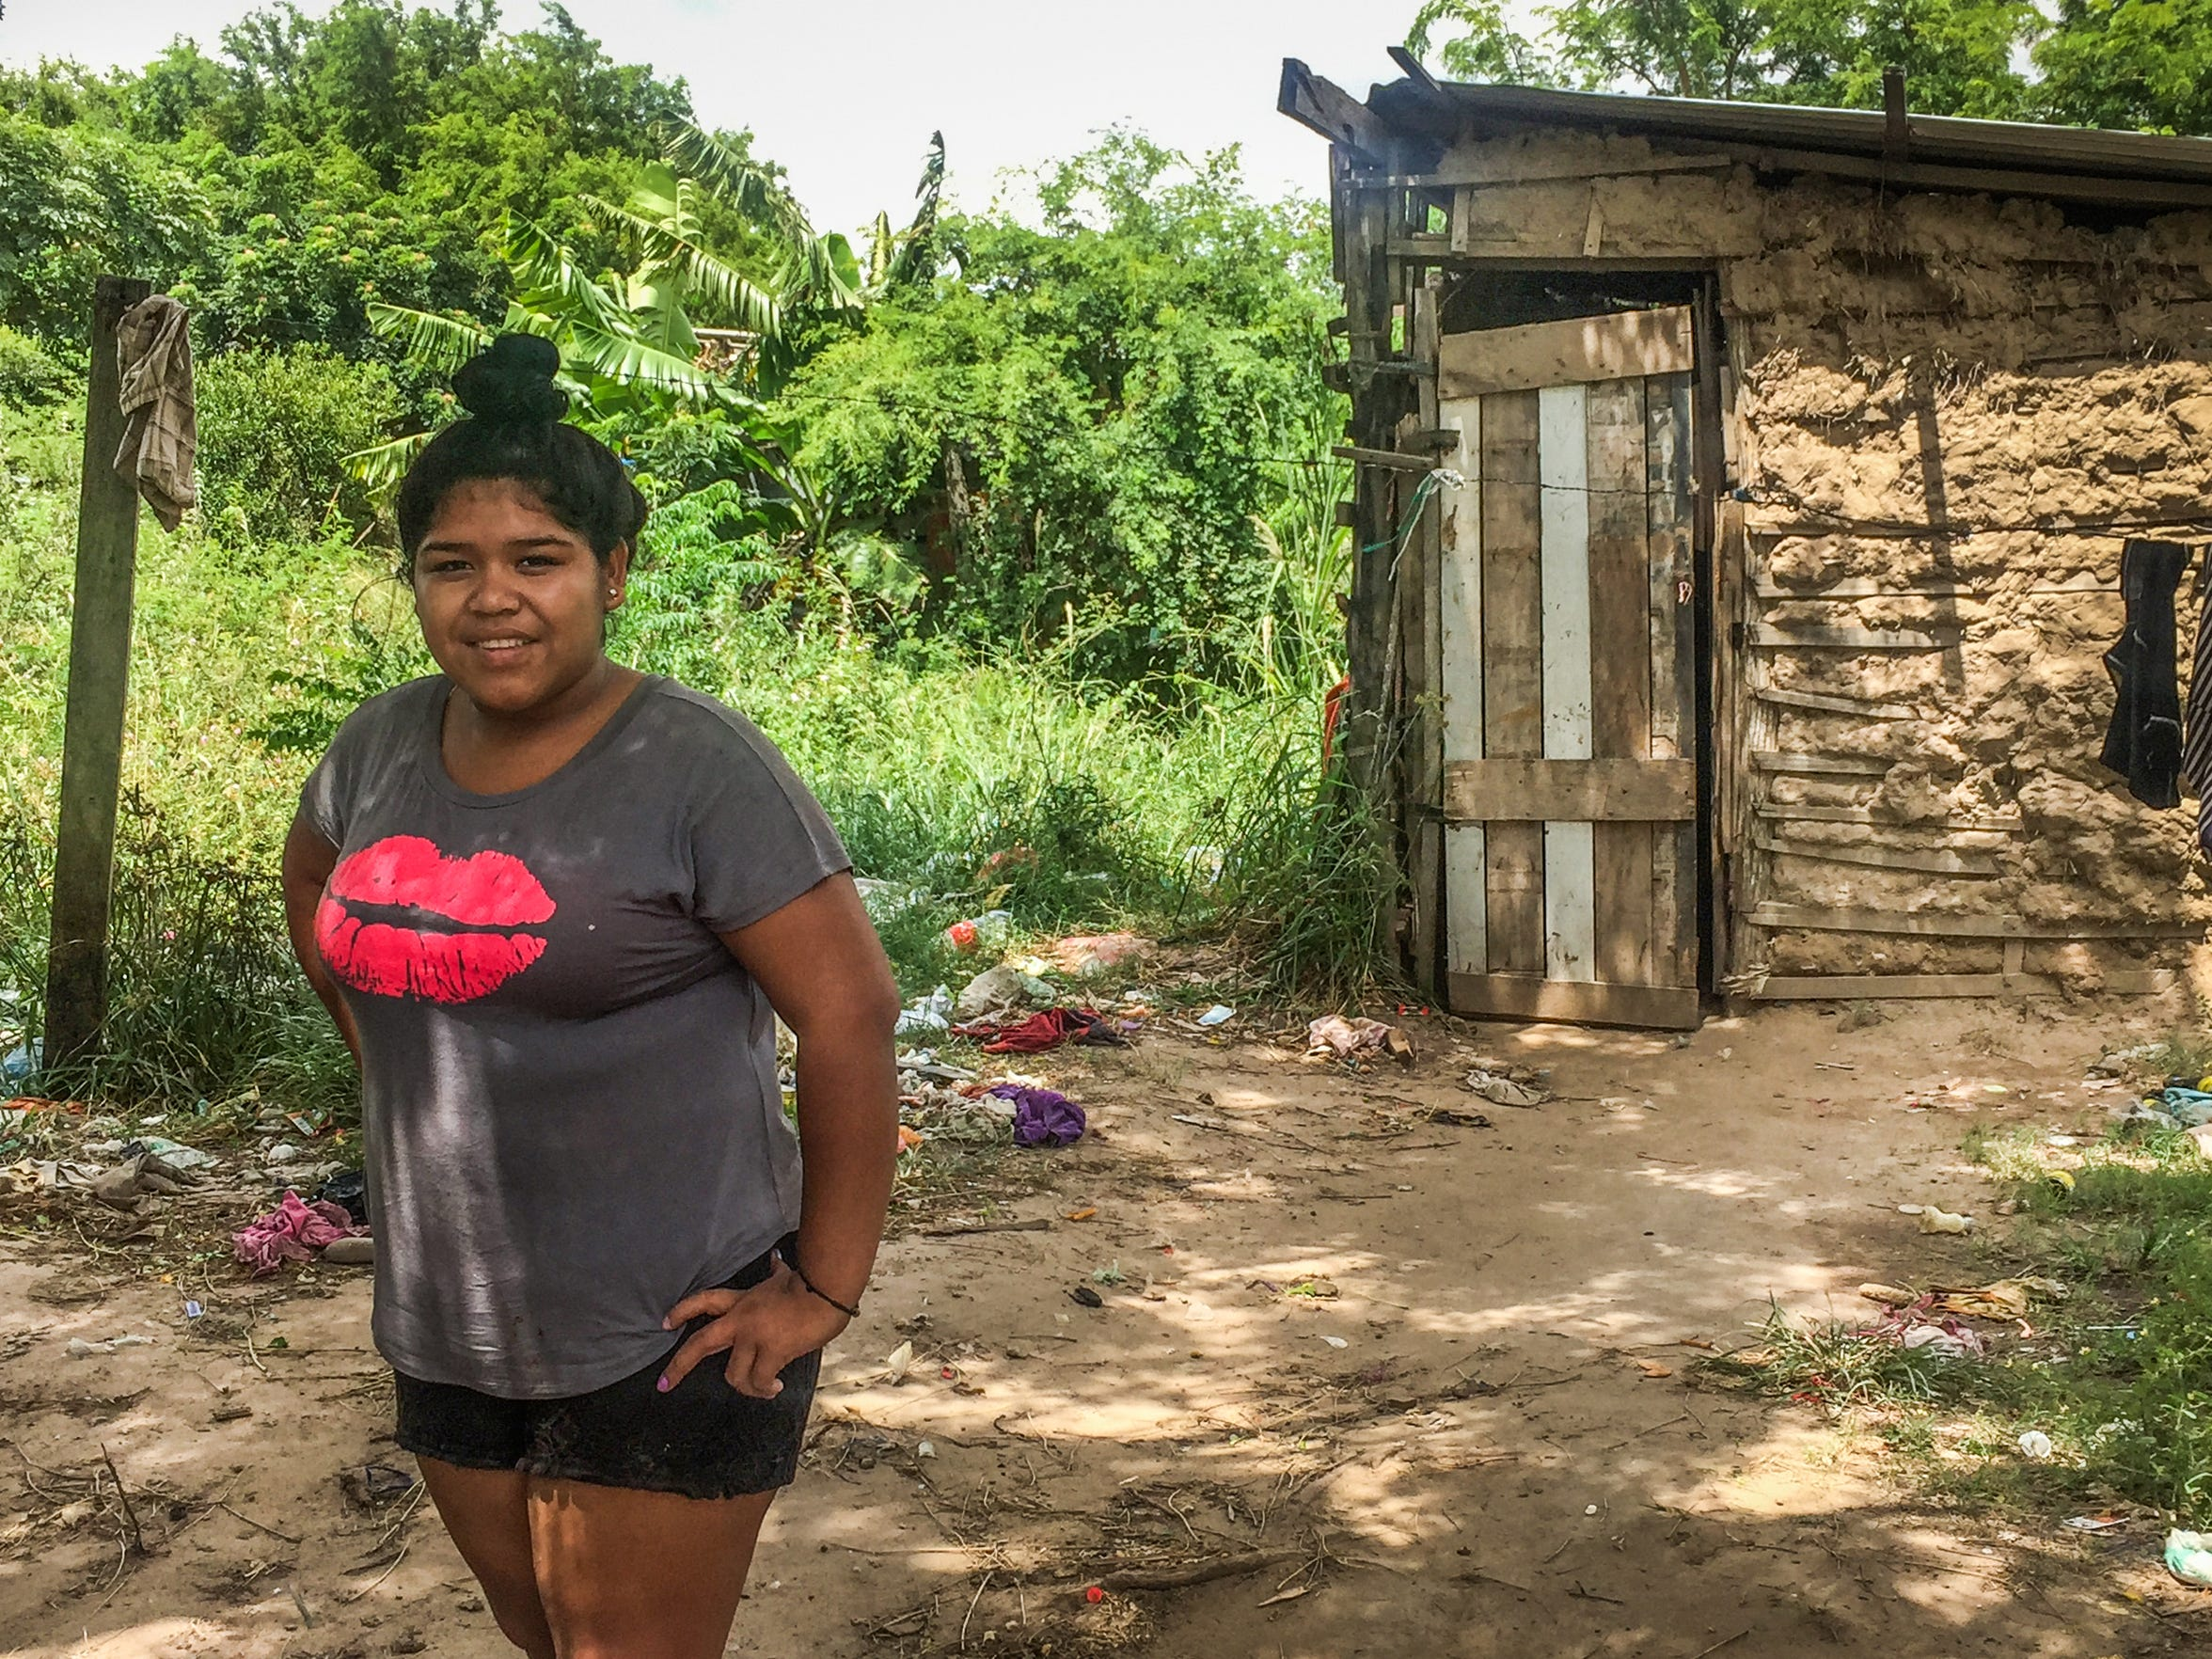 Api, at 17, has never attended school.  She lives in the shack behind her with as many as seven other abandoned and orphaned children in a village near Santa Cruz de la Sierra, Bolivia.